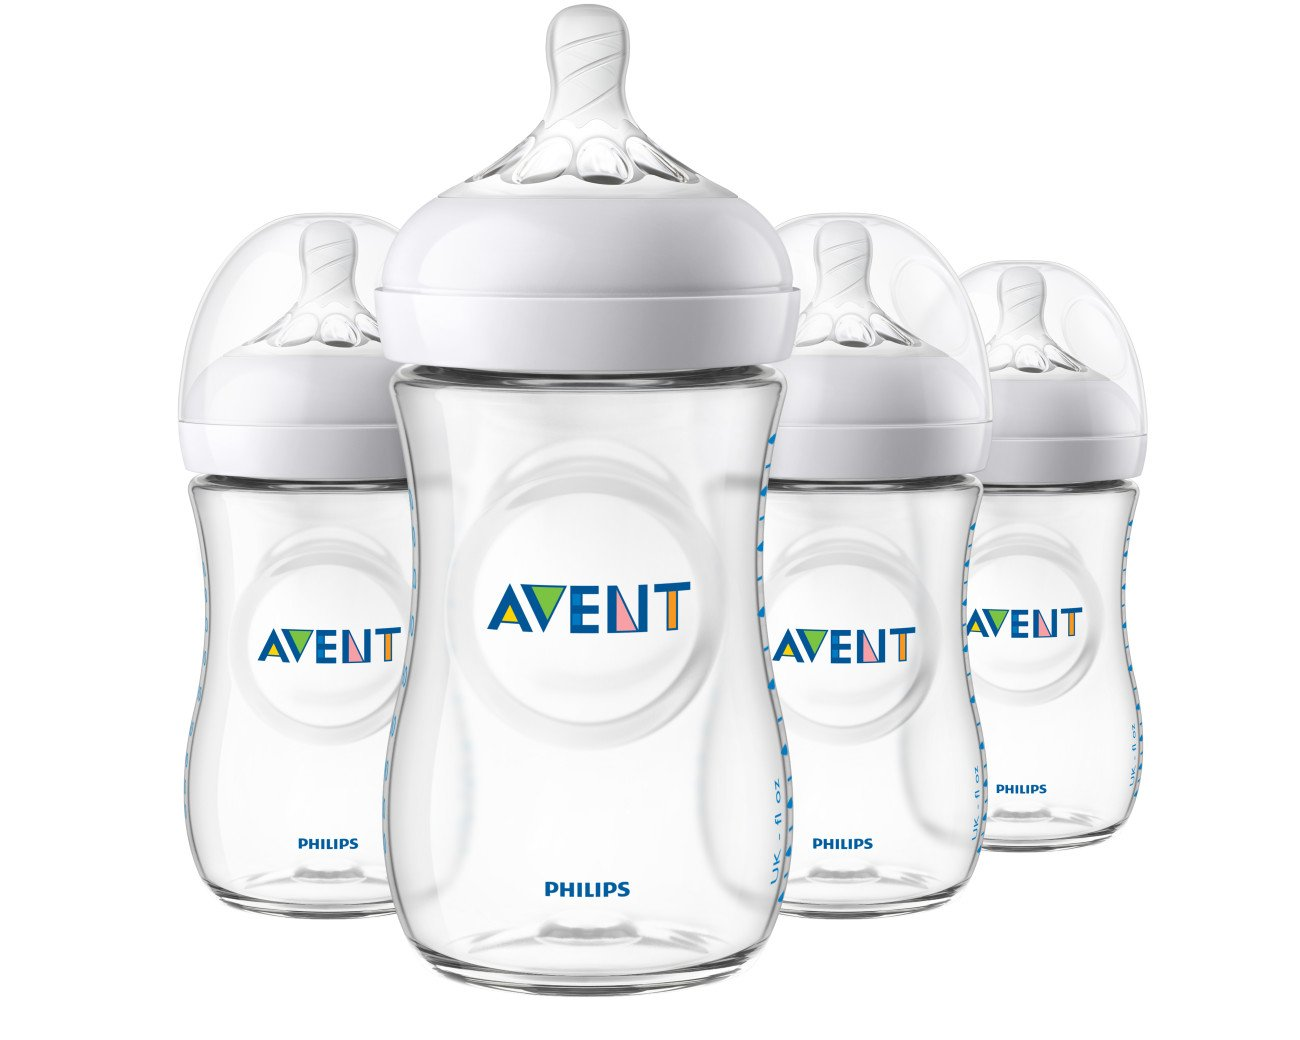 Philips AVENT Natural baby bottles. ($29 for a 4-pack)